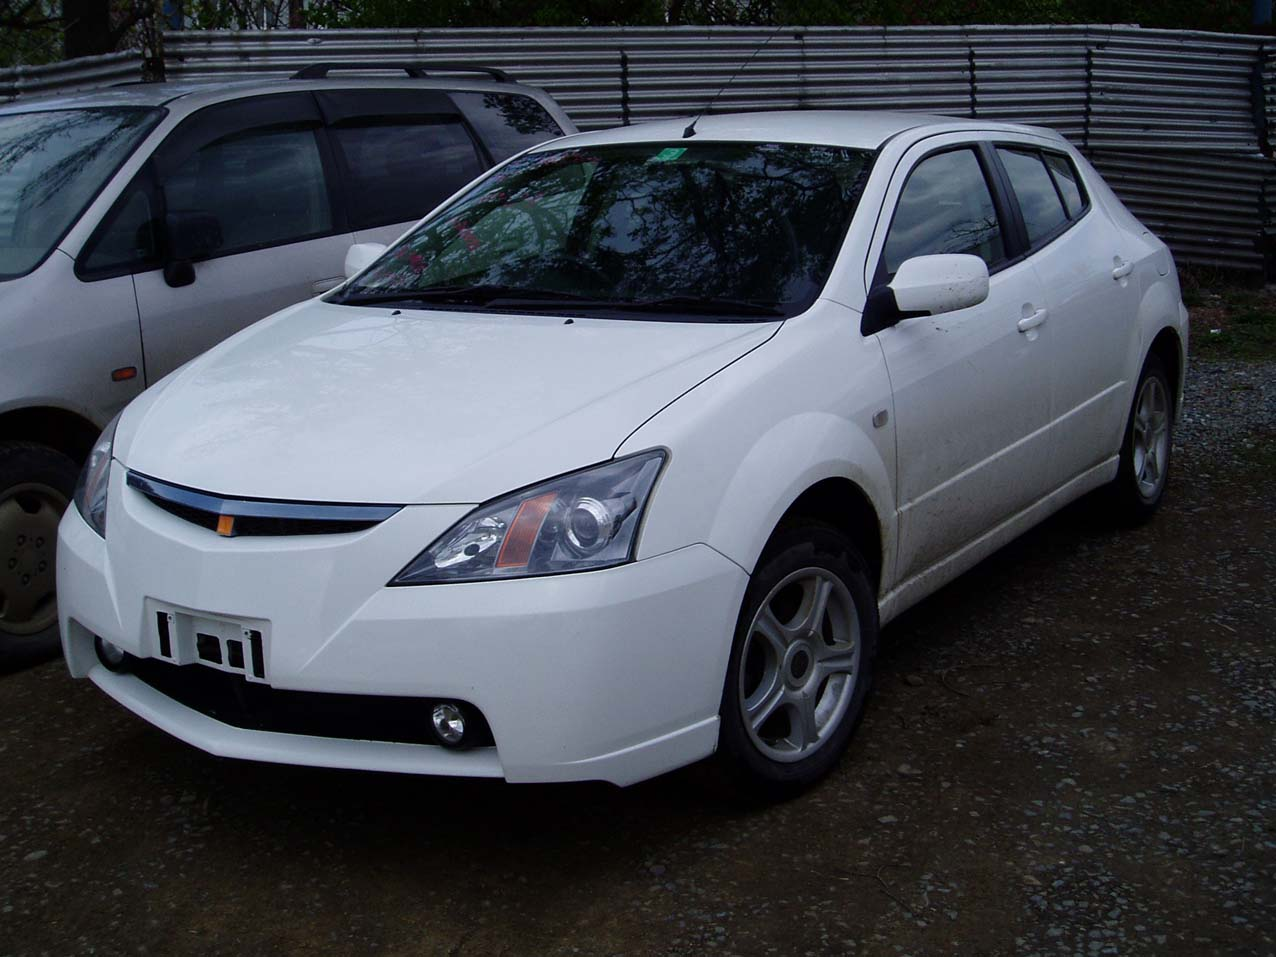 2001 Toyota WILL VS Pictures, 1500cc., Gasoline, FF, Automatic For ...